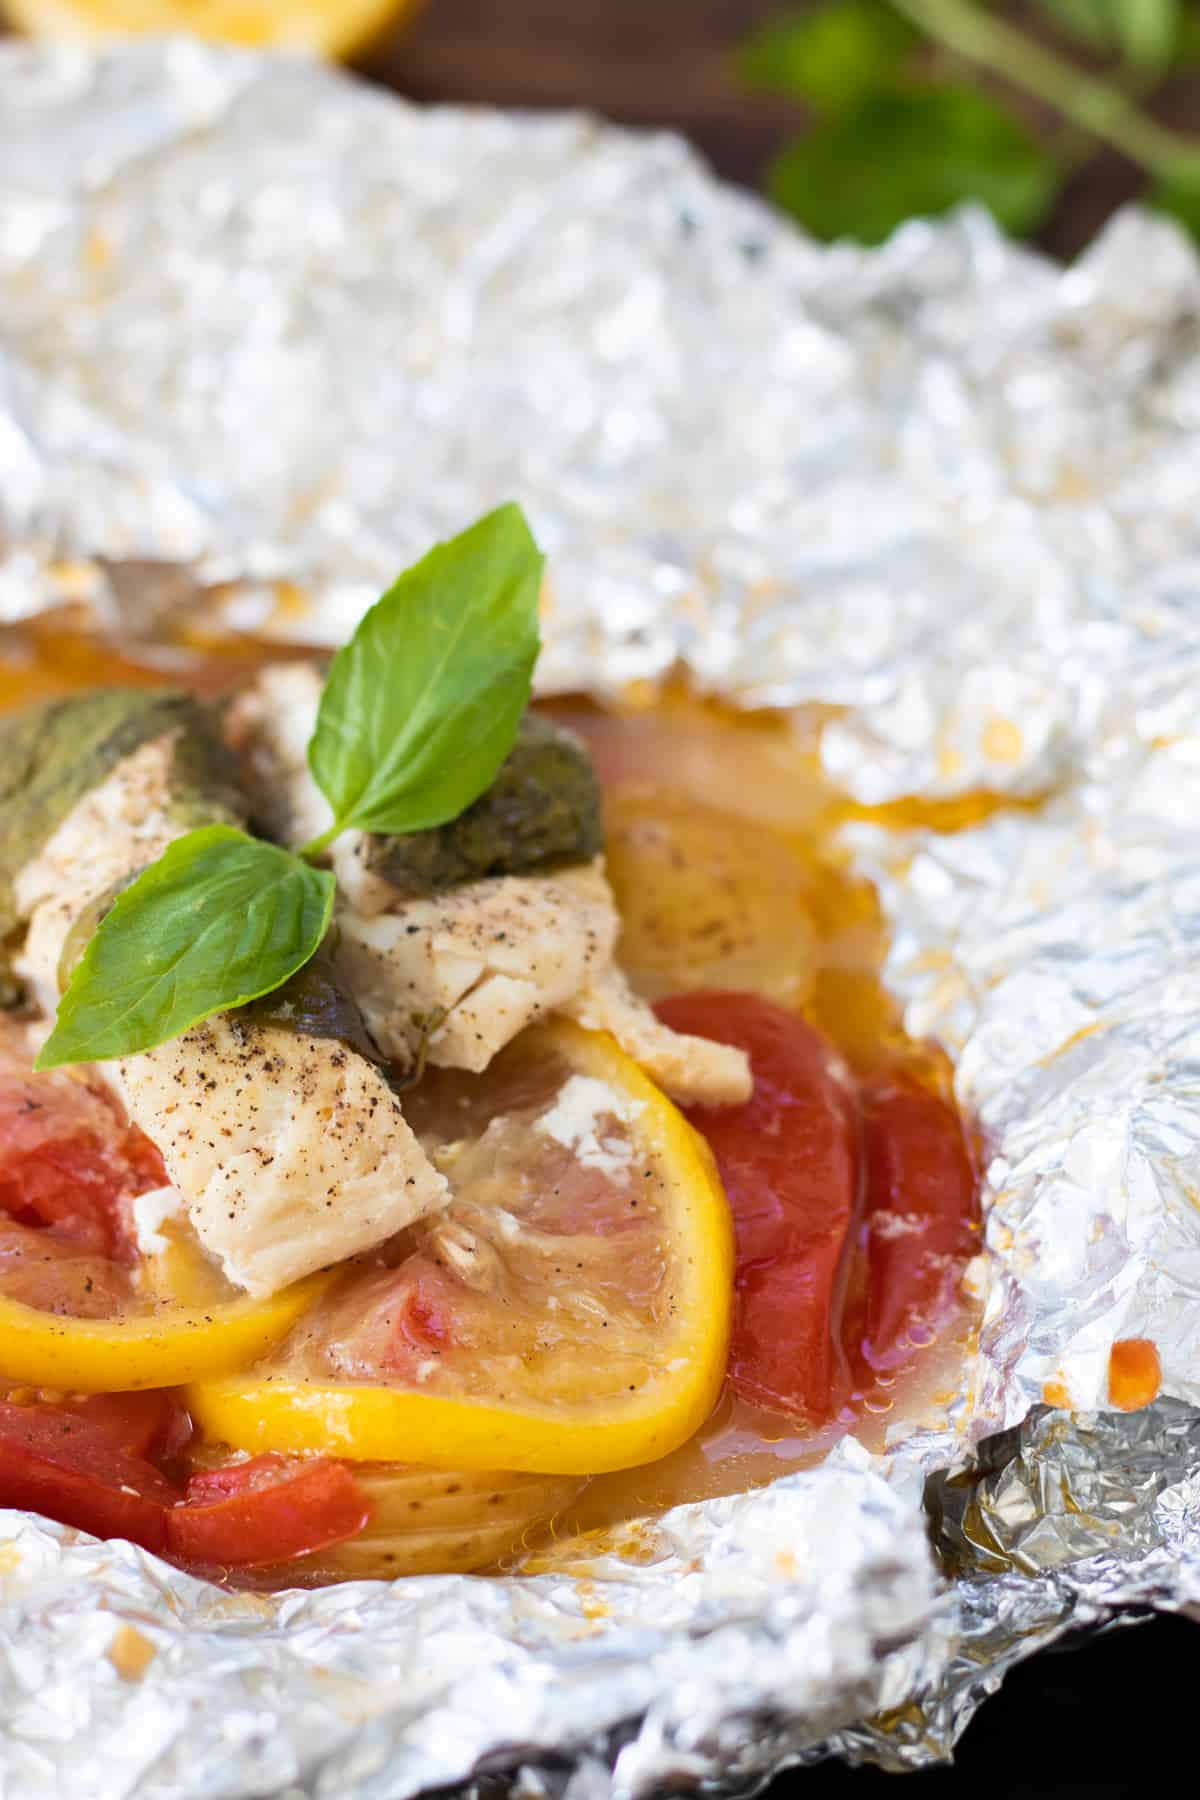 an opened foil pack after cooking, topped with basil